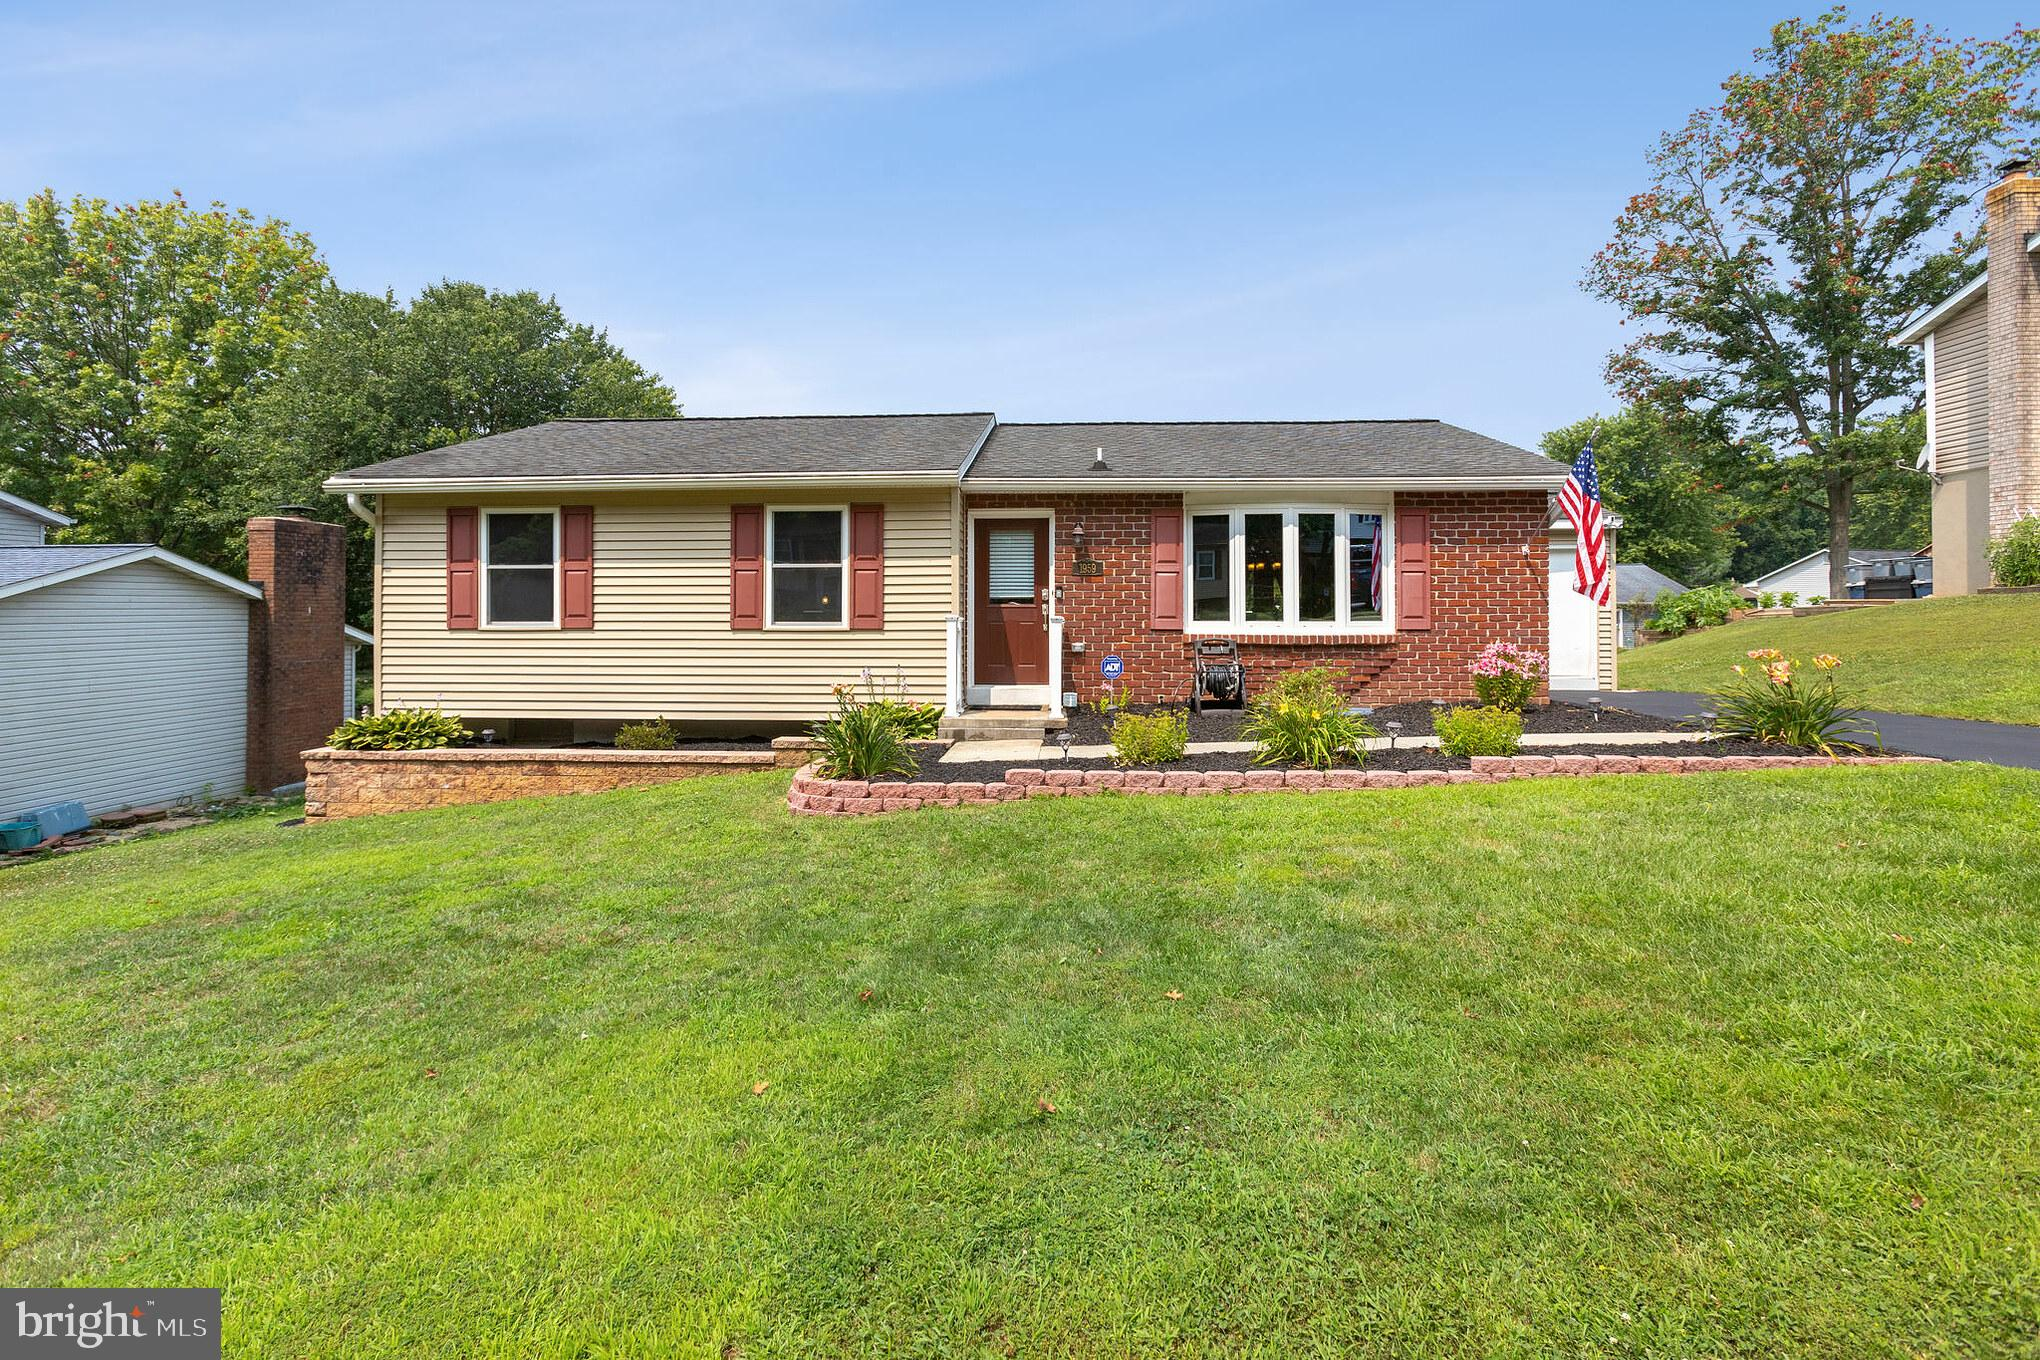 Welcome Home to this beautiful rancher in Hilltop Estates. Sykesville is know as one of the most sou